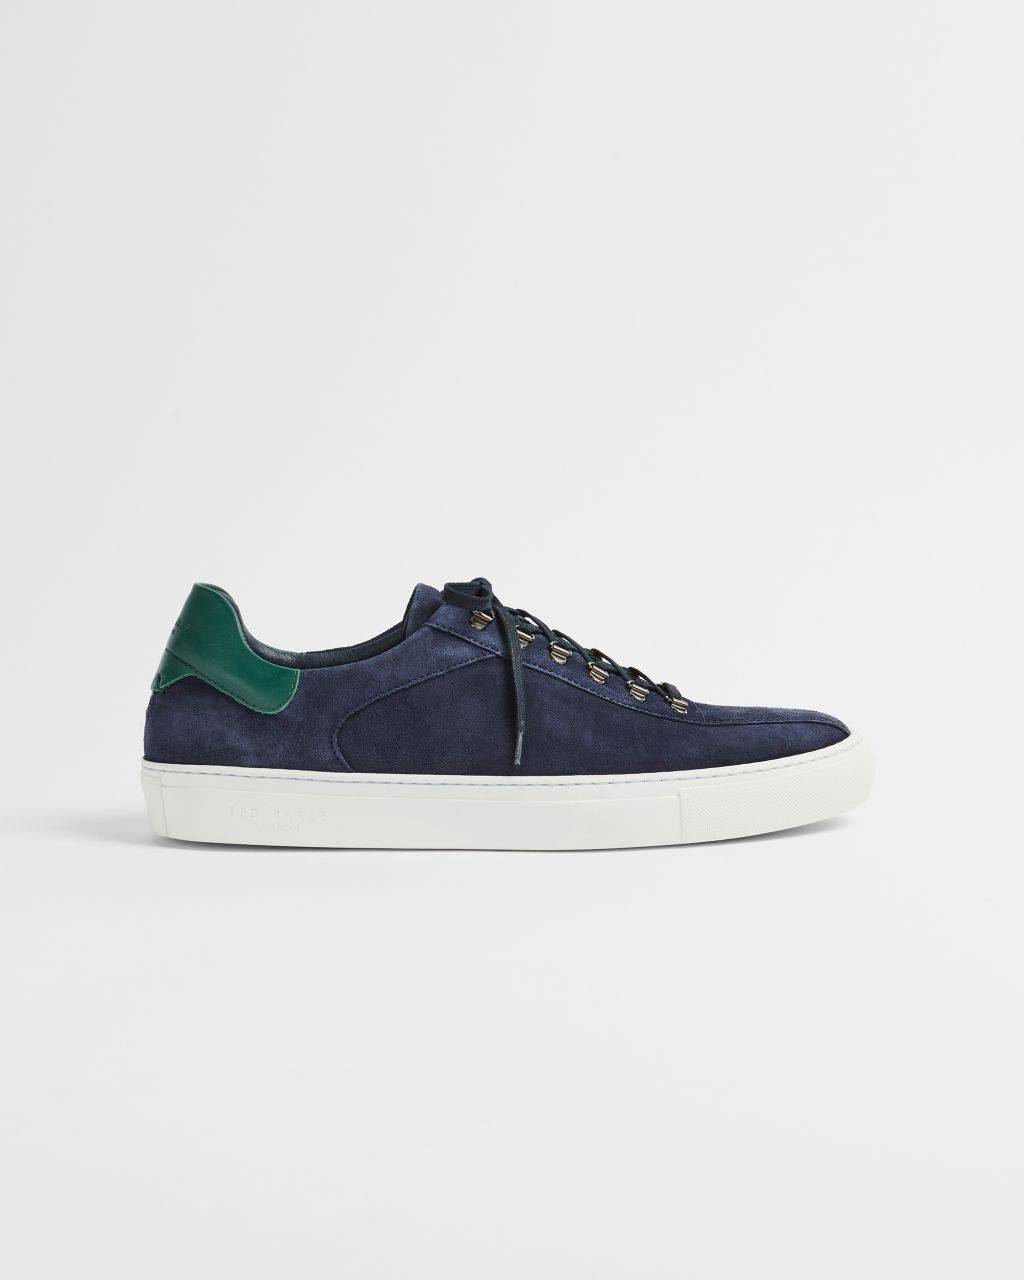 Ted Baker Hiker Lace Suede Trainers  - Navy - Size: UK 7 (EU 41)